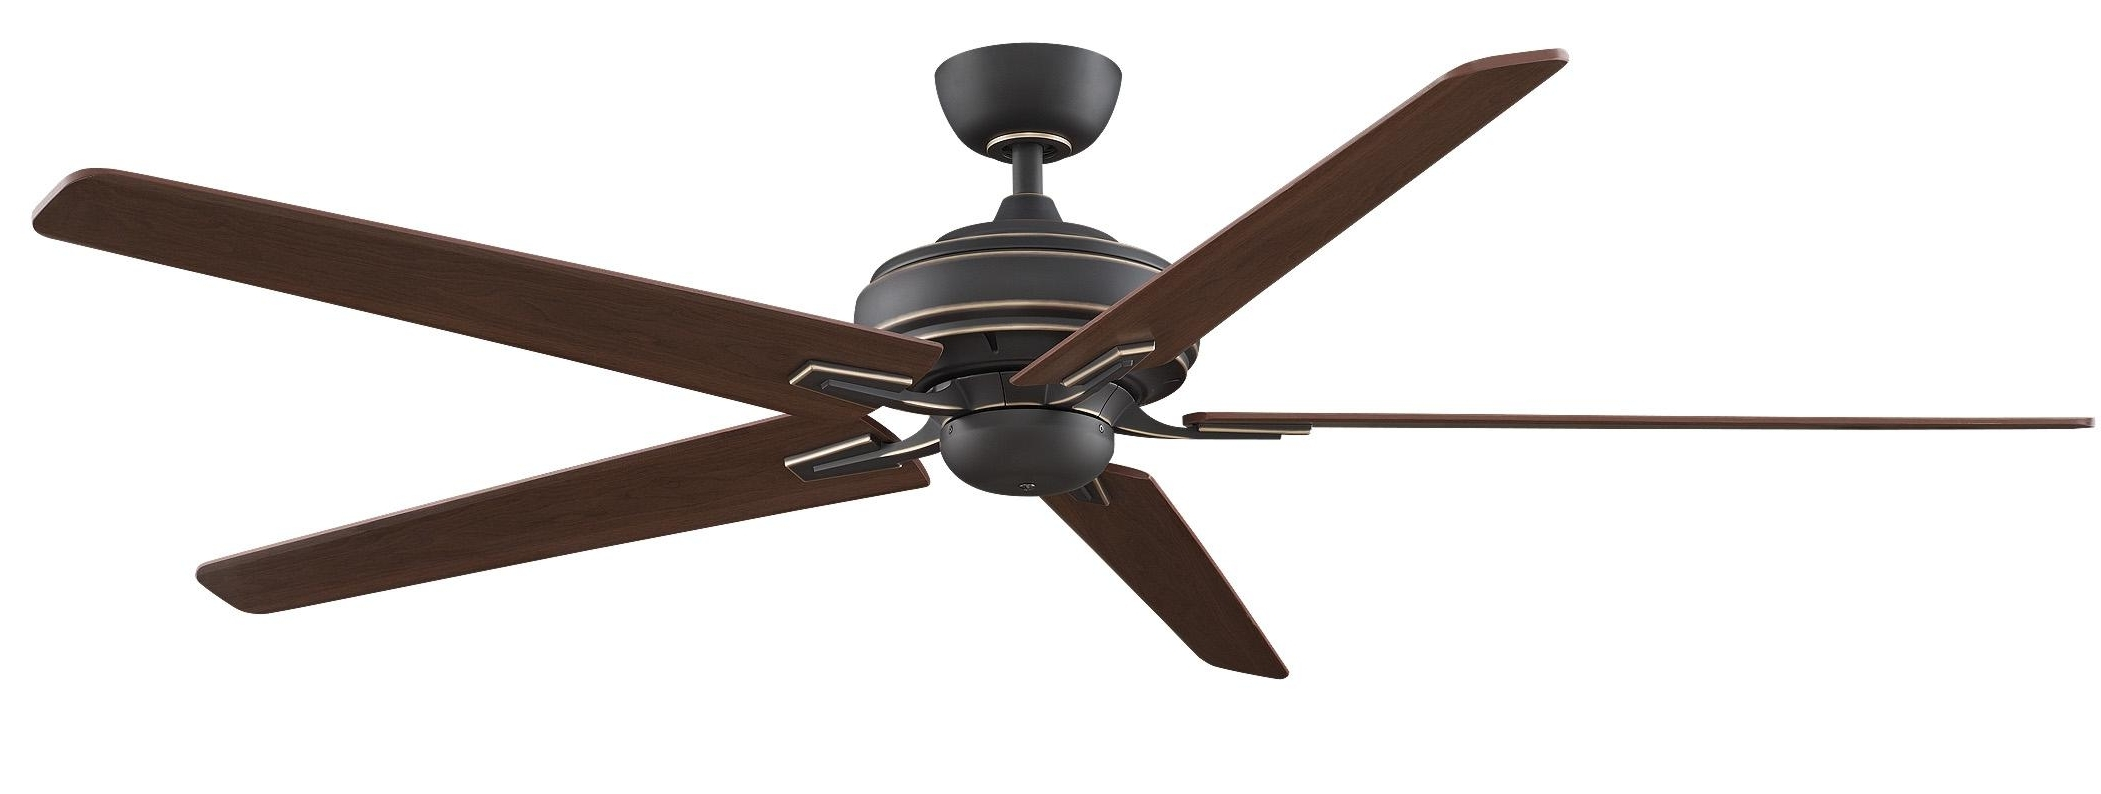 Brown Outdoor Ceiling Fan With Light With 2019 Inch Outdoor Ceiling Fan With 60 Ceiling Fan With Light (View 8 of 20)